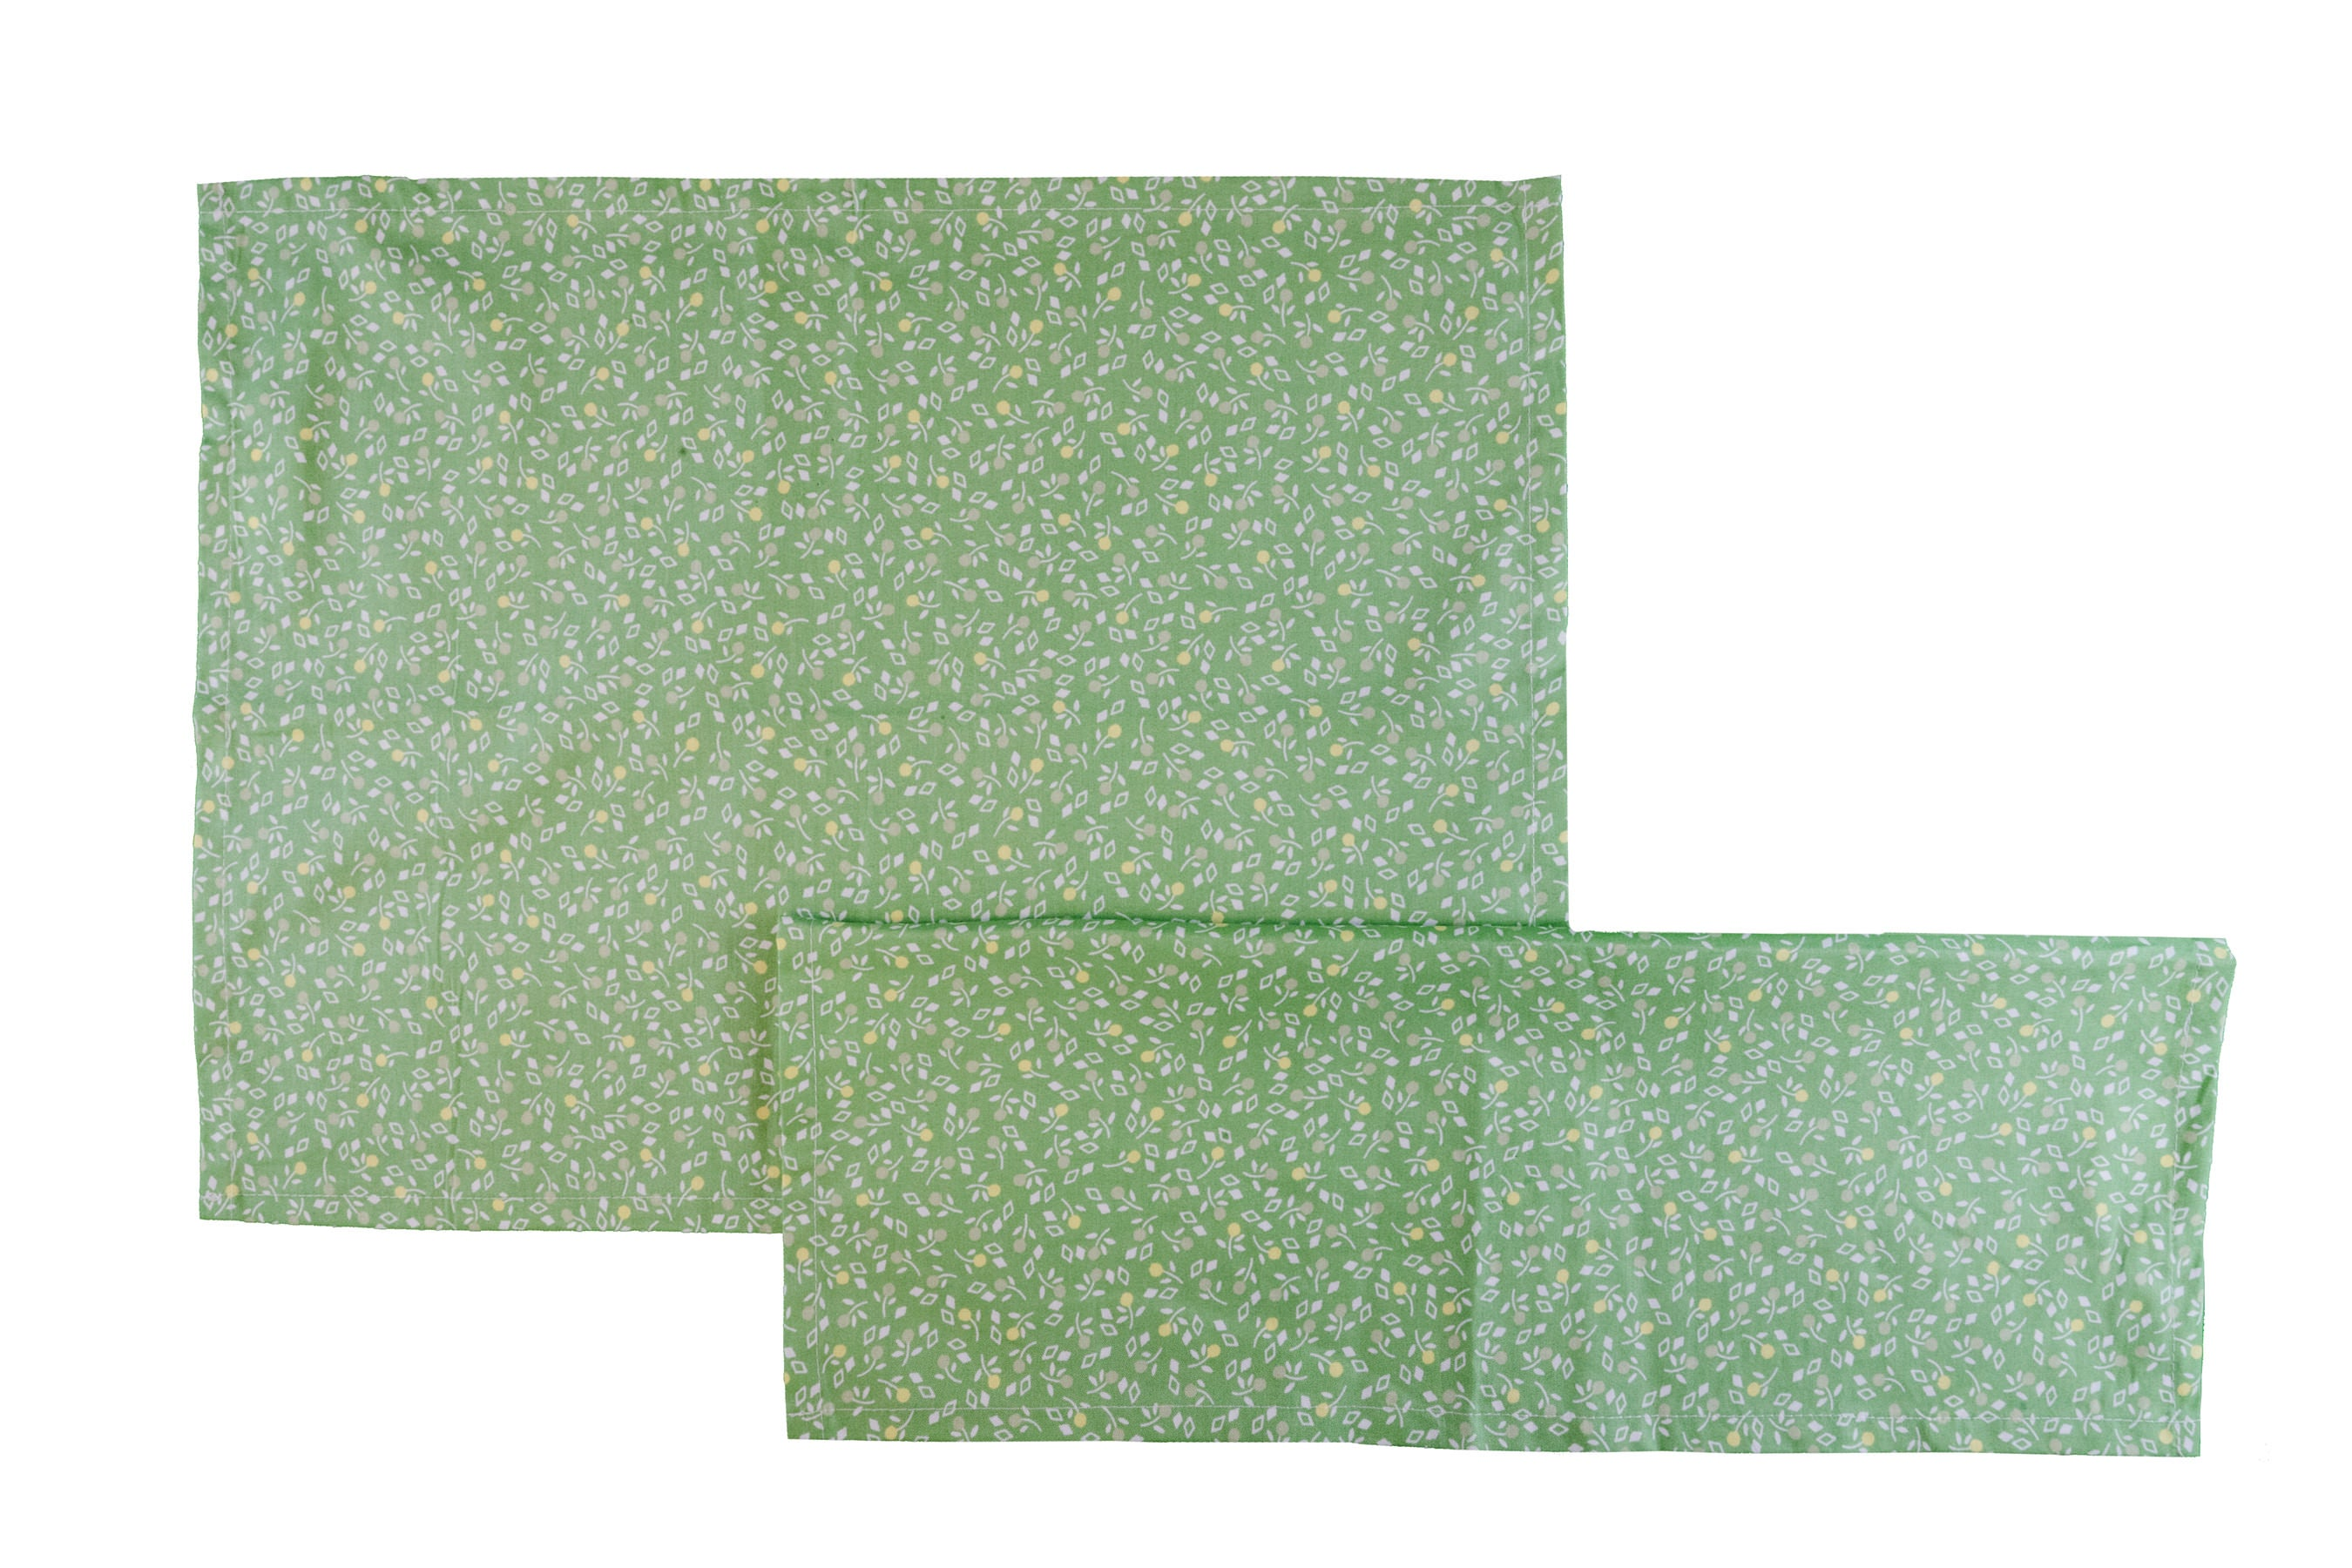 "Stitch & Sparkle KITCHEN TOWEL 1 Piece Pack, 15"" by 19"" , 100% Cotton, Vintage, Toss Flowerlet"